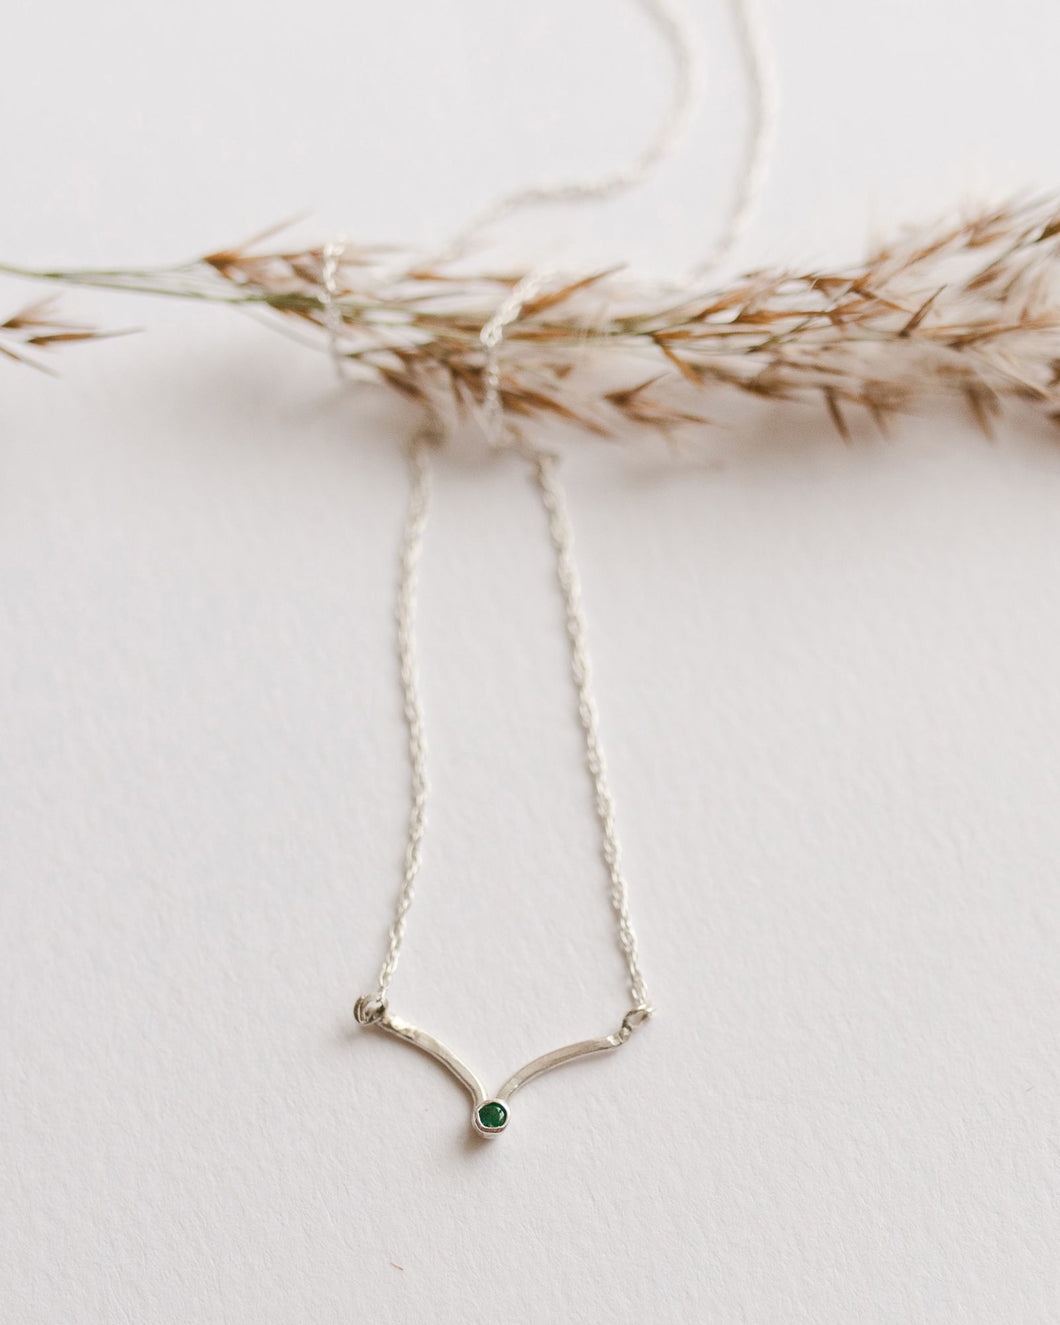 Flowing emerald delicate necklace